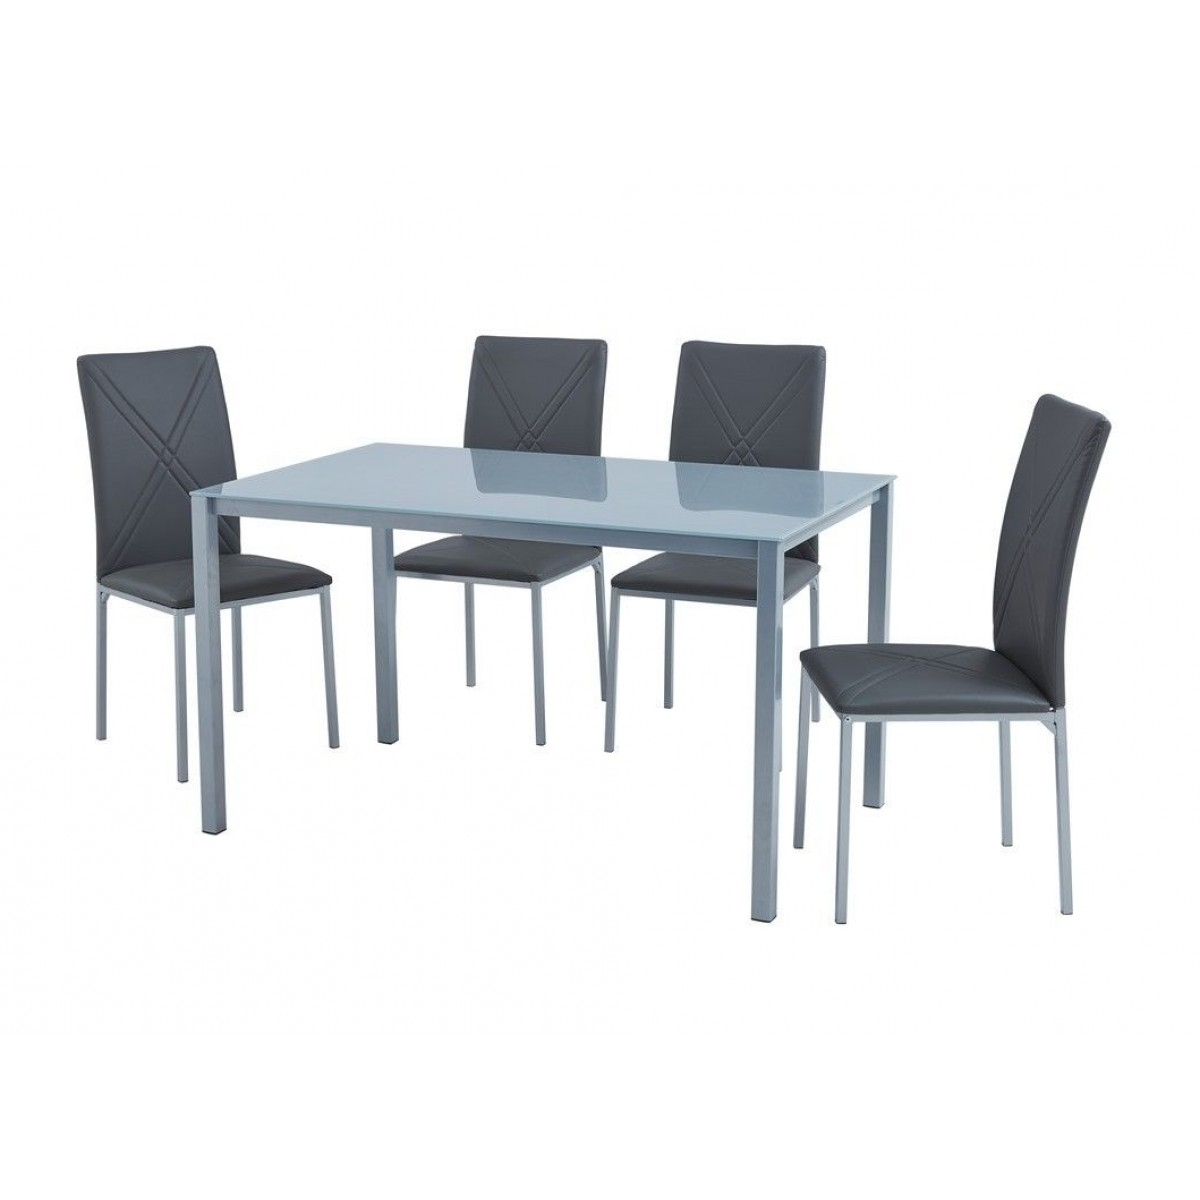 Well Liked Luxury Grey Glass Dining Table & 4 Faux Leather Chairs Set – Home Done Inside Grey Glass Dining Tables (View 23 of 25)